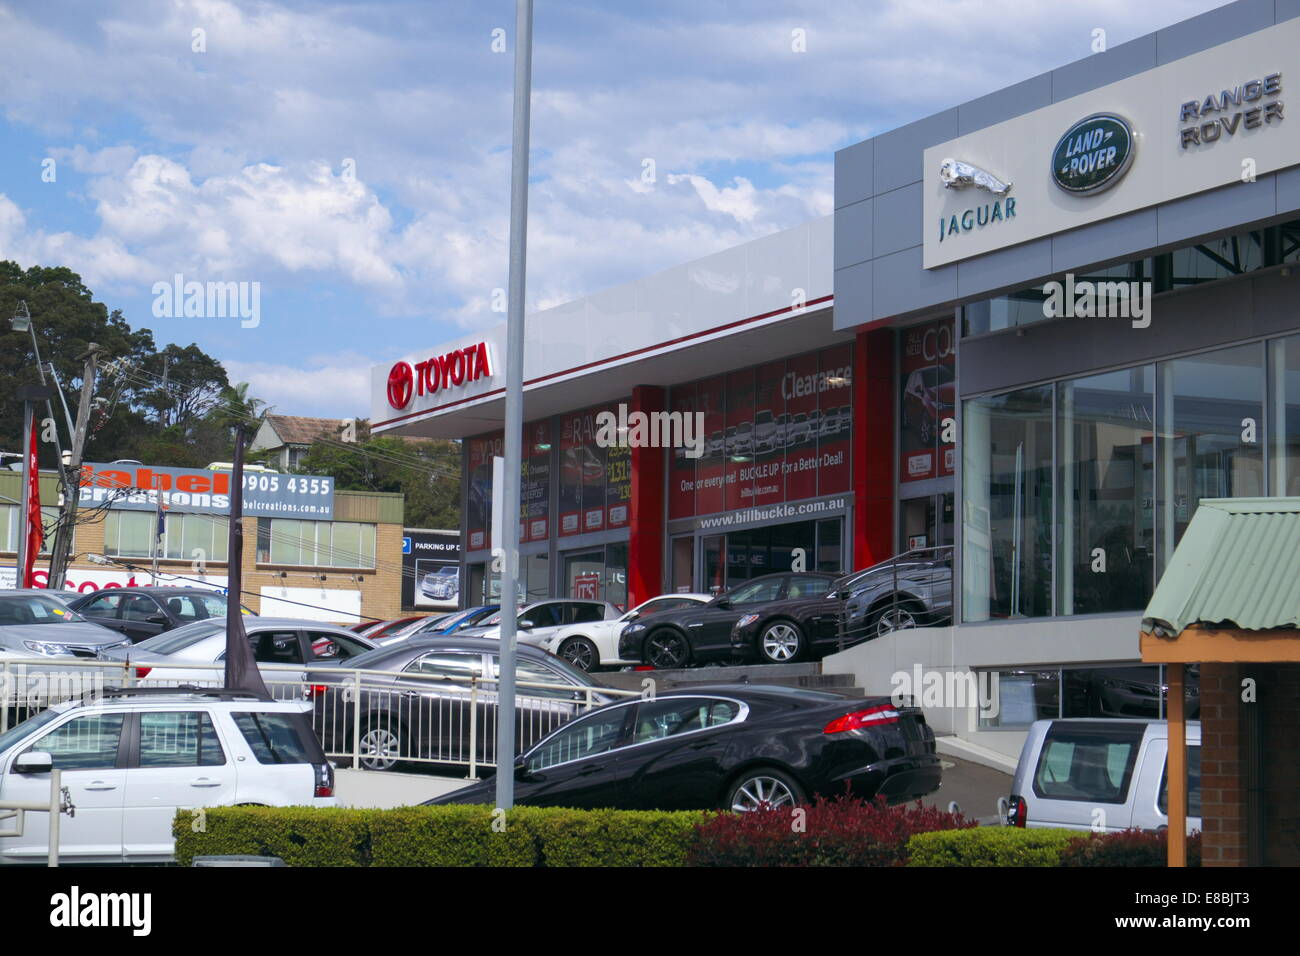 toyota jaguar and land rover car dealerships showrooms in brookvale,sydney,australia - Stock Image